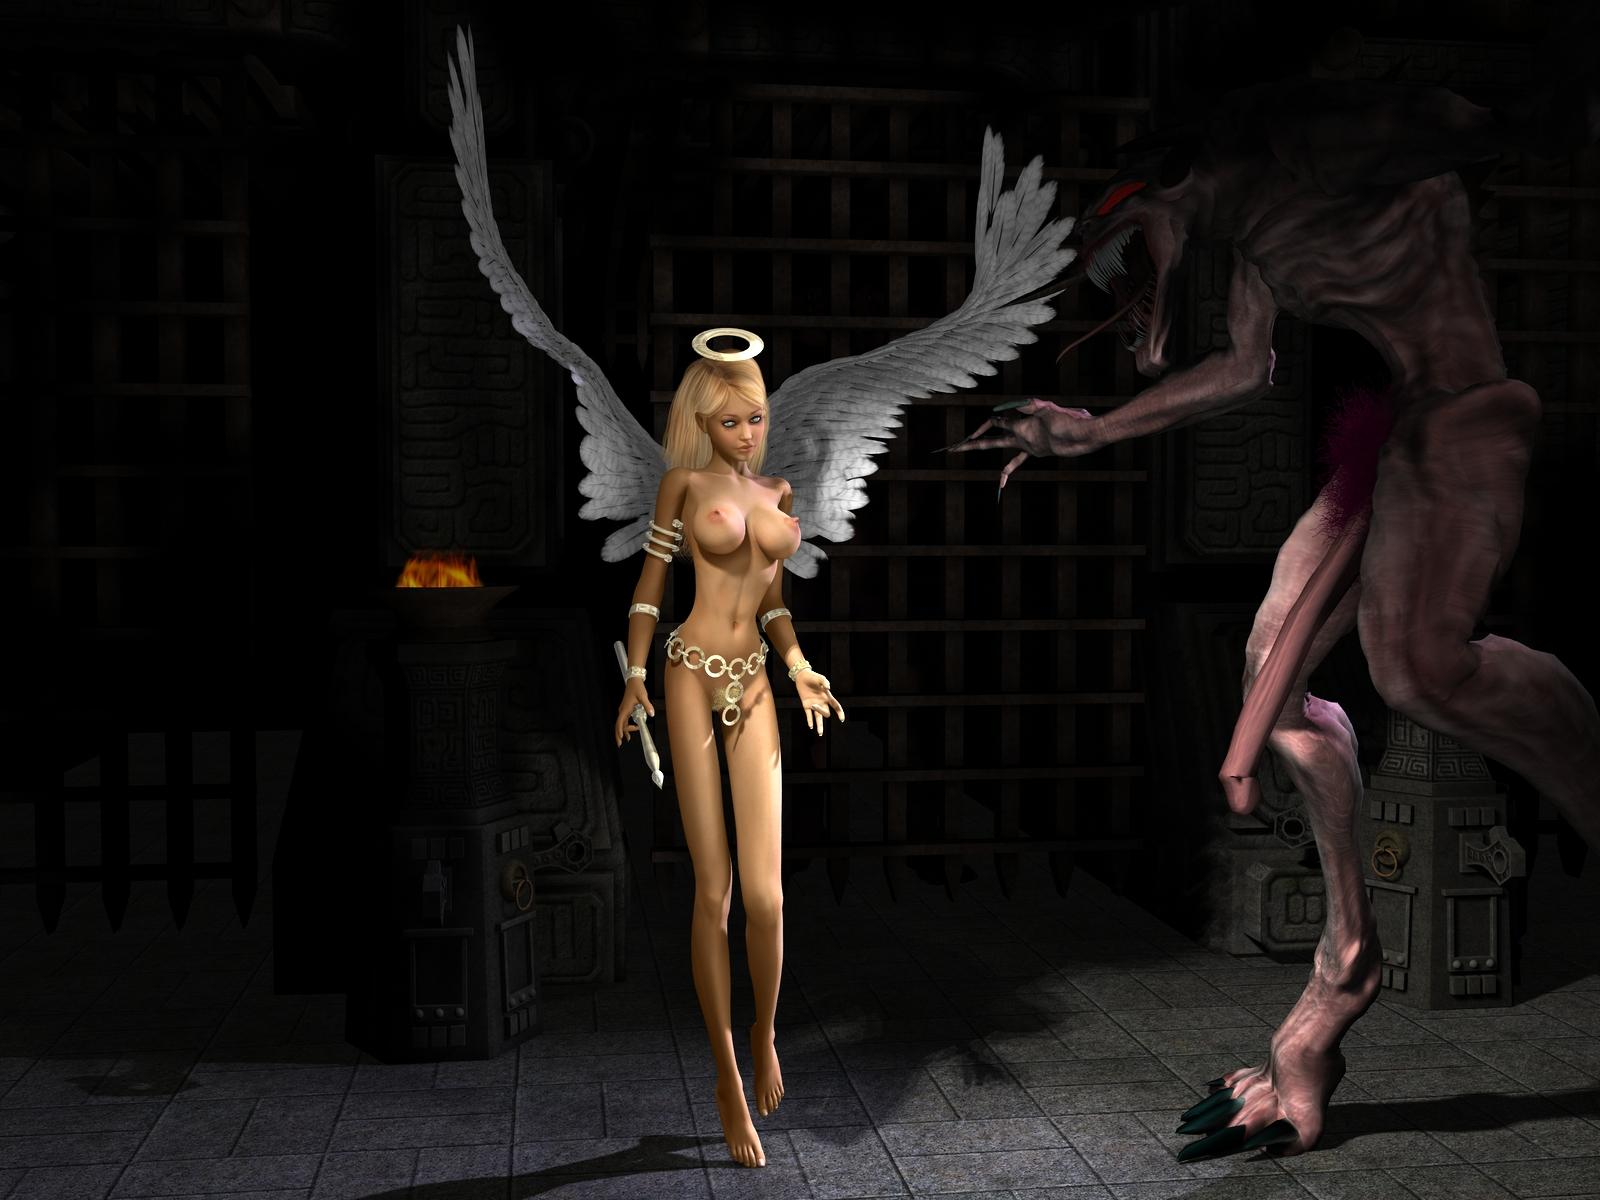 Wallpaper demon nude 3d sexy gallery